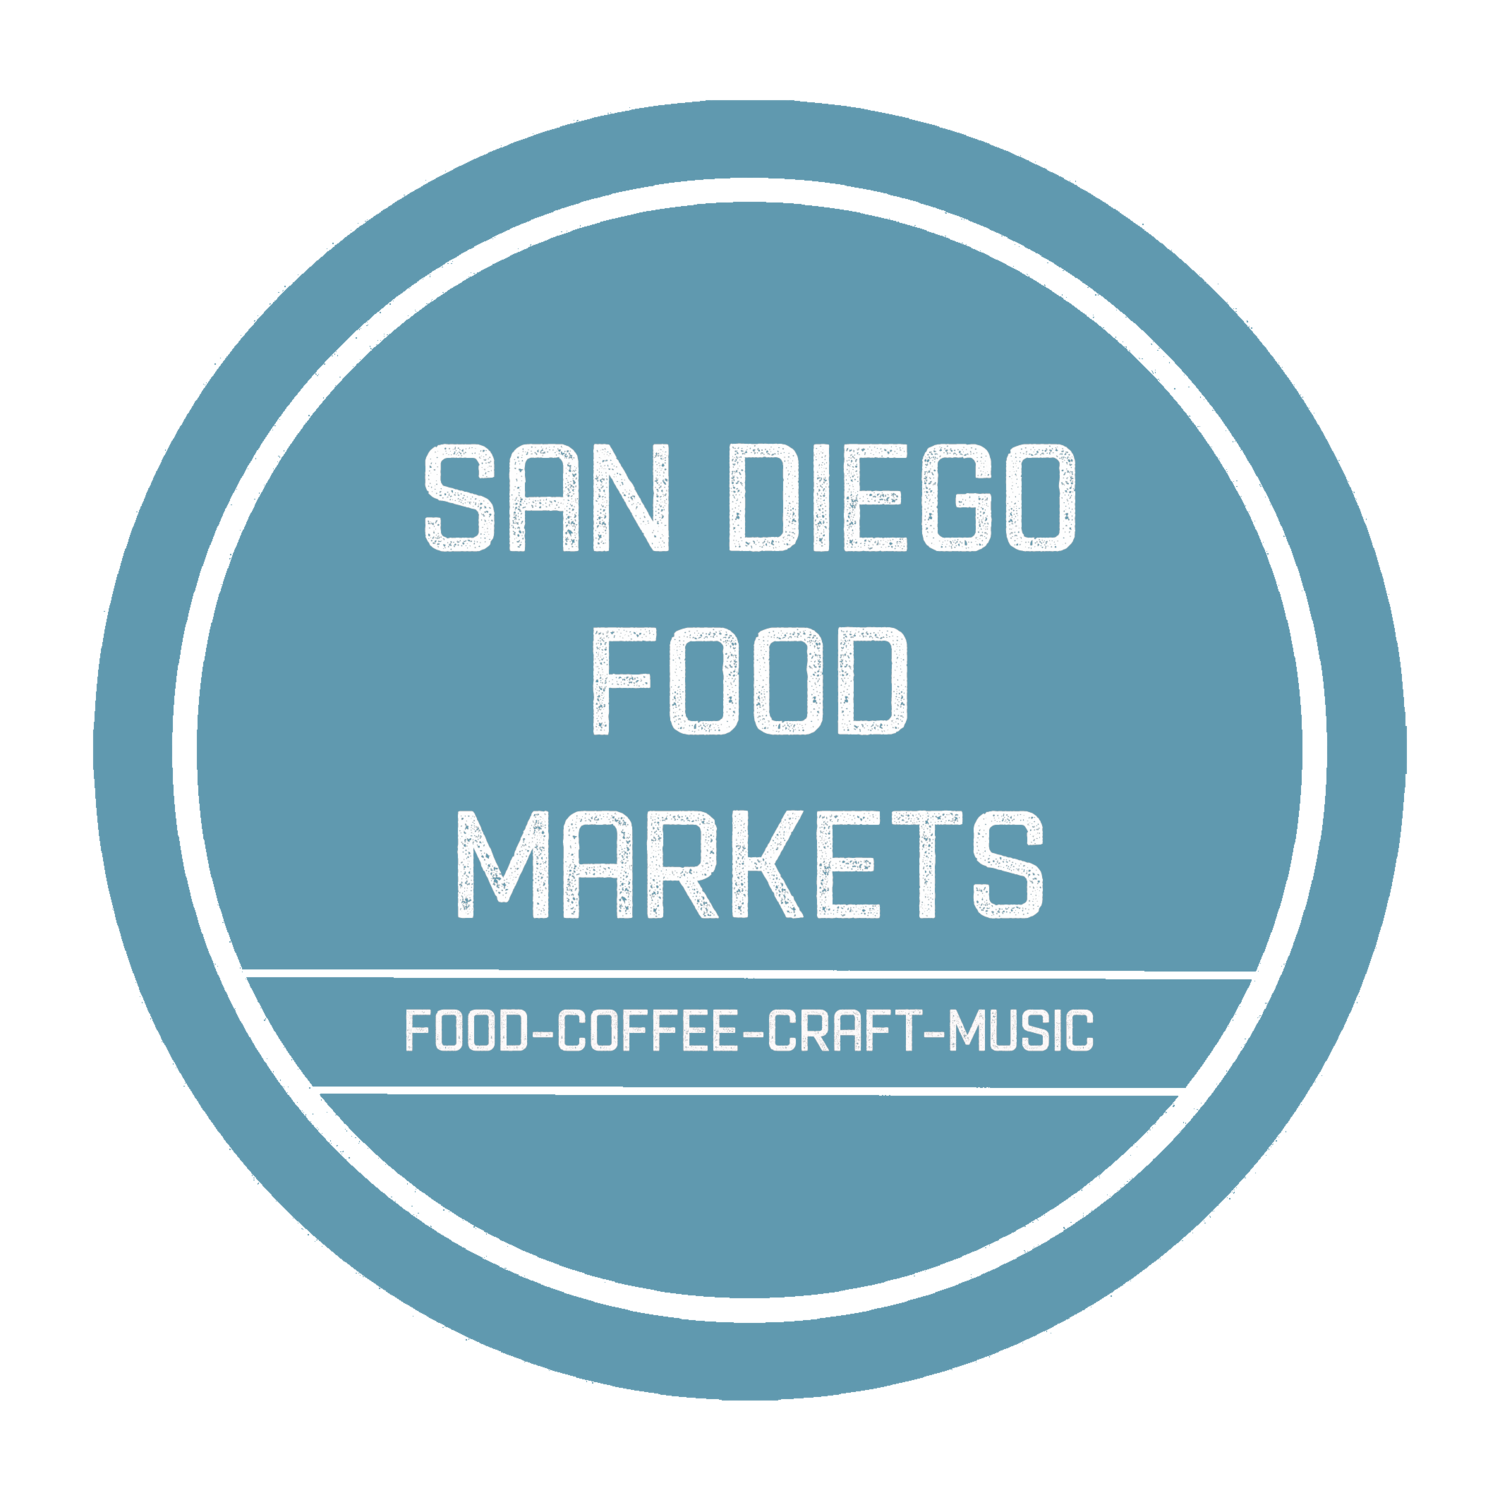 SAN DIEGO FOOD MARKETS